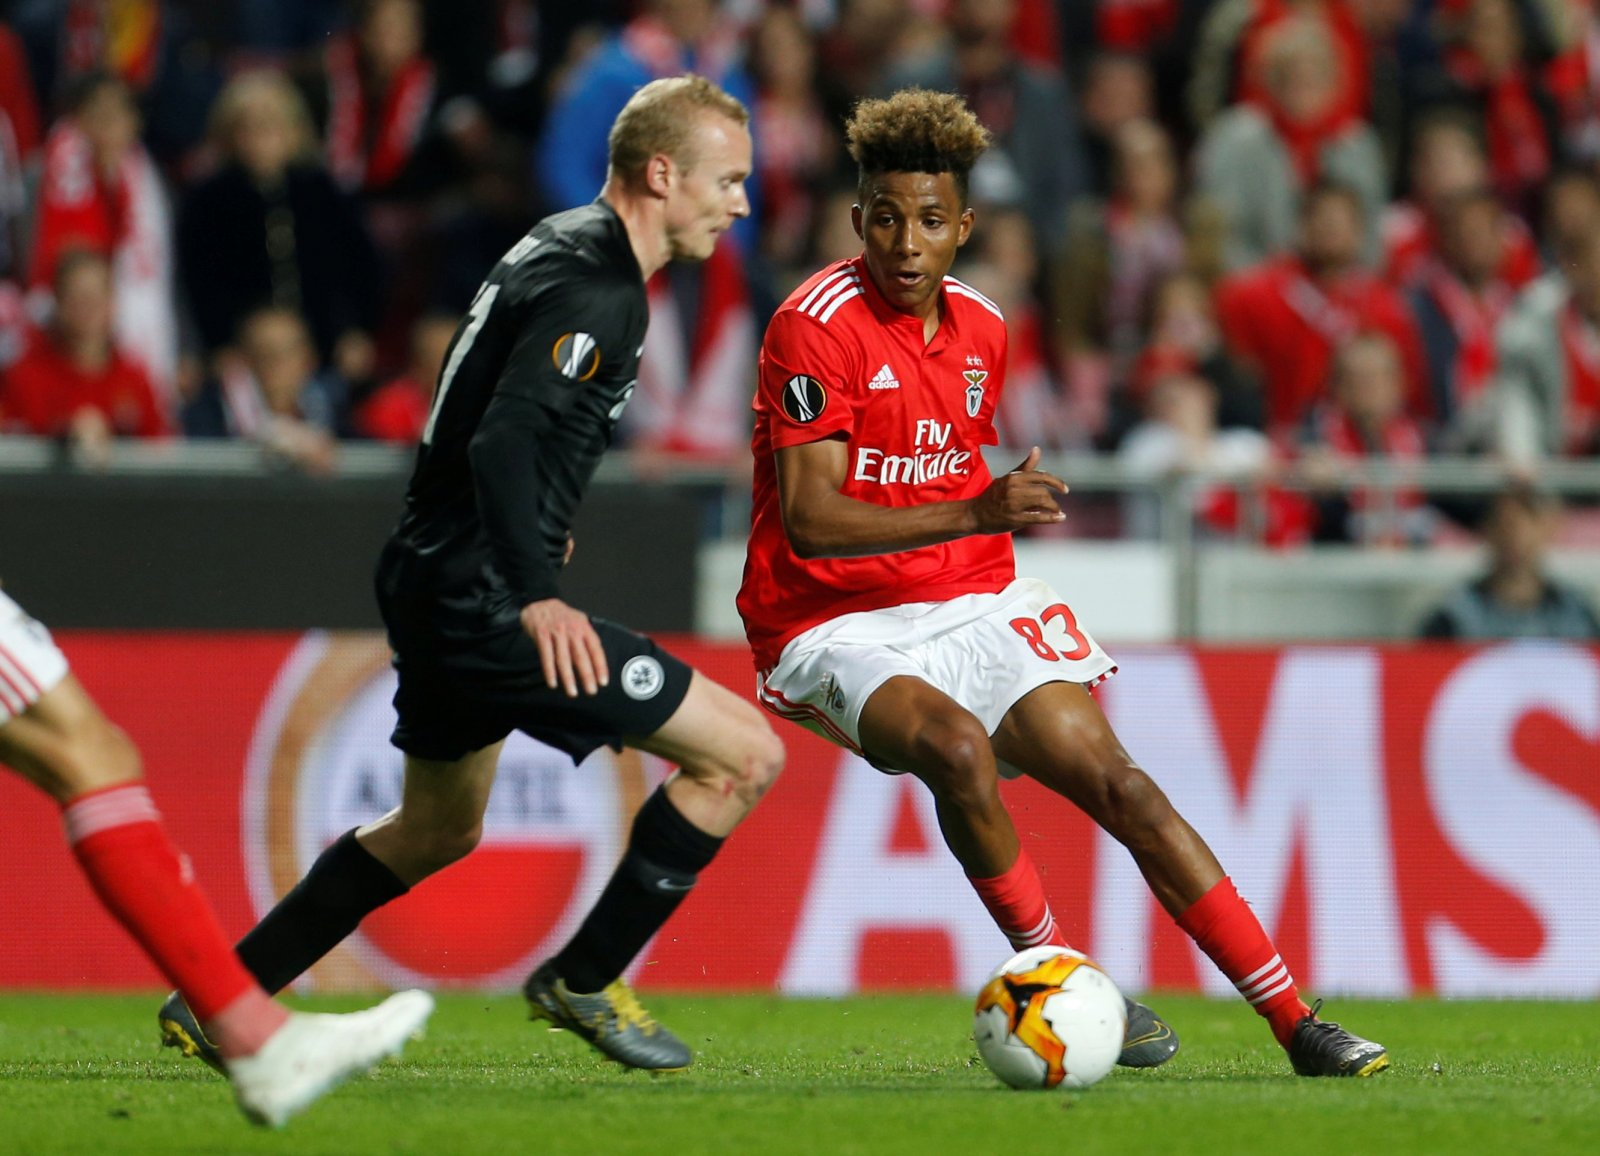 Gedson Fernandes could return to Benfica in January